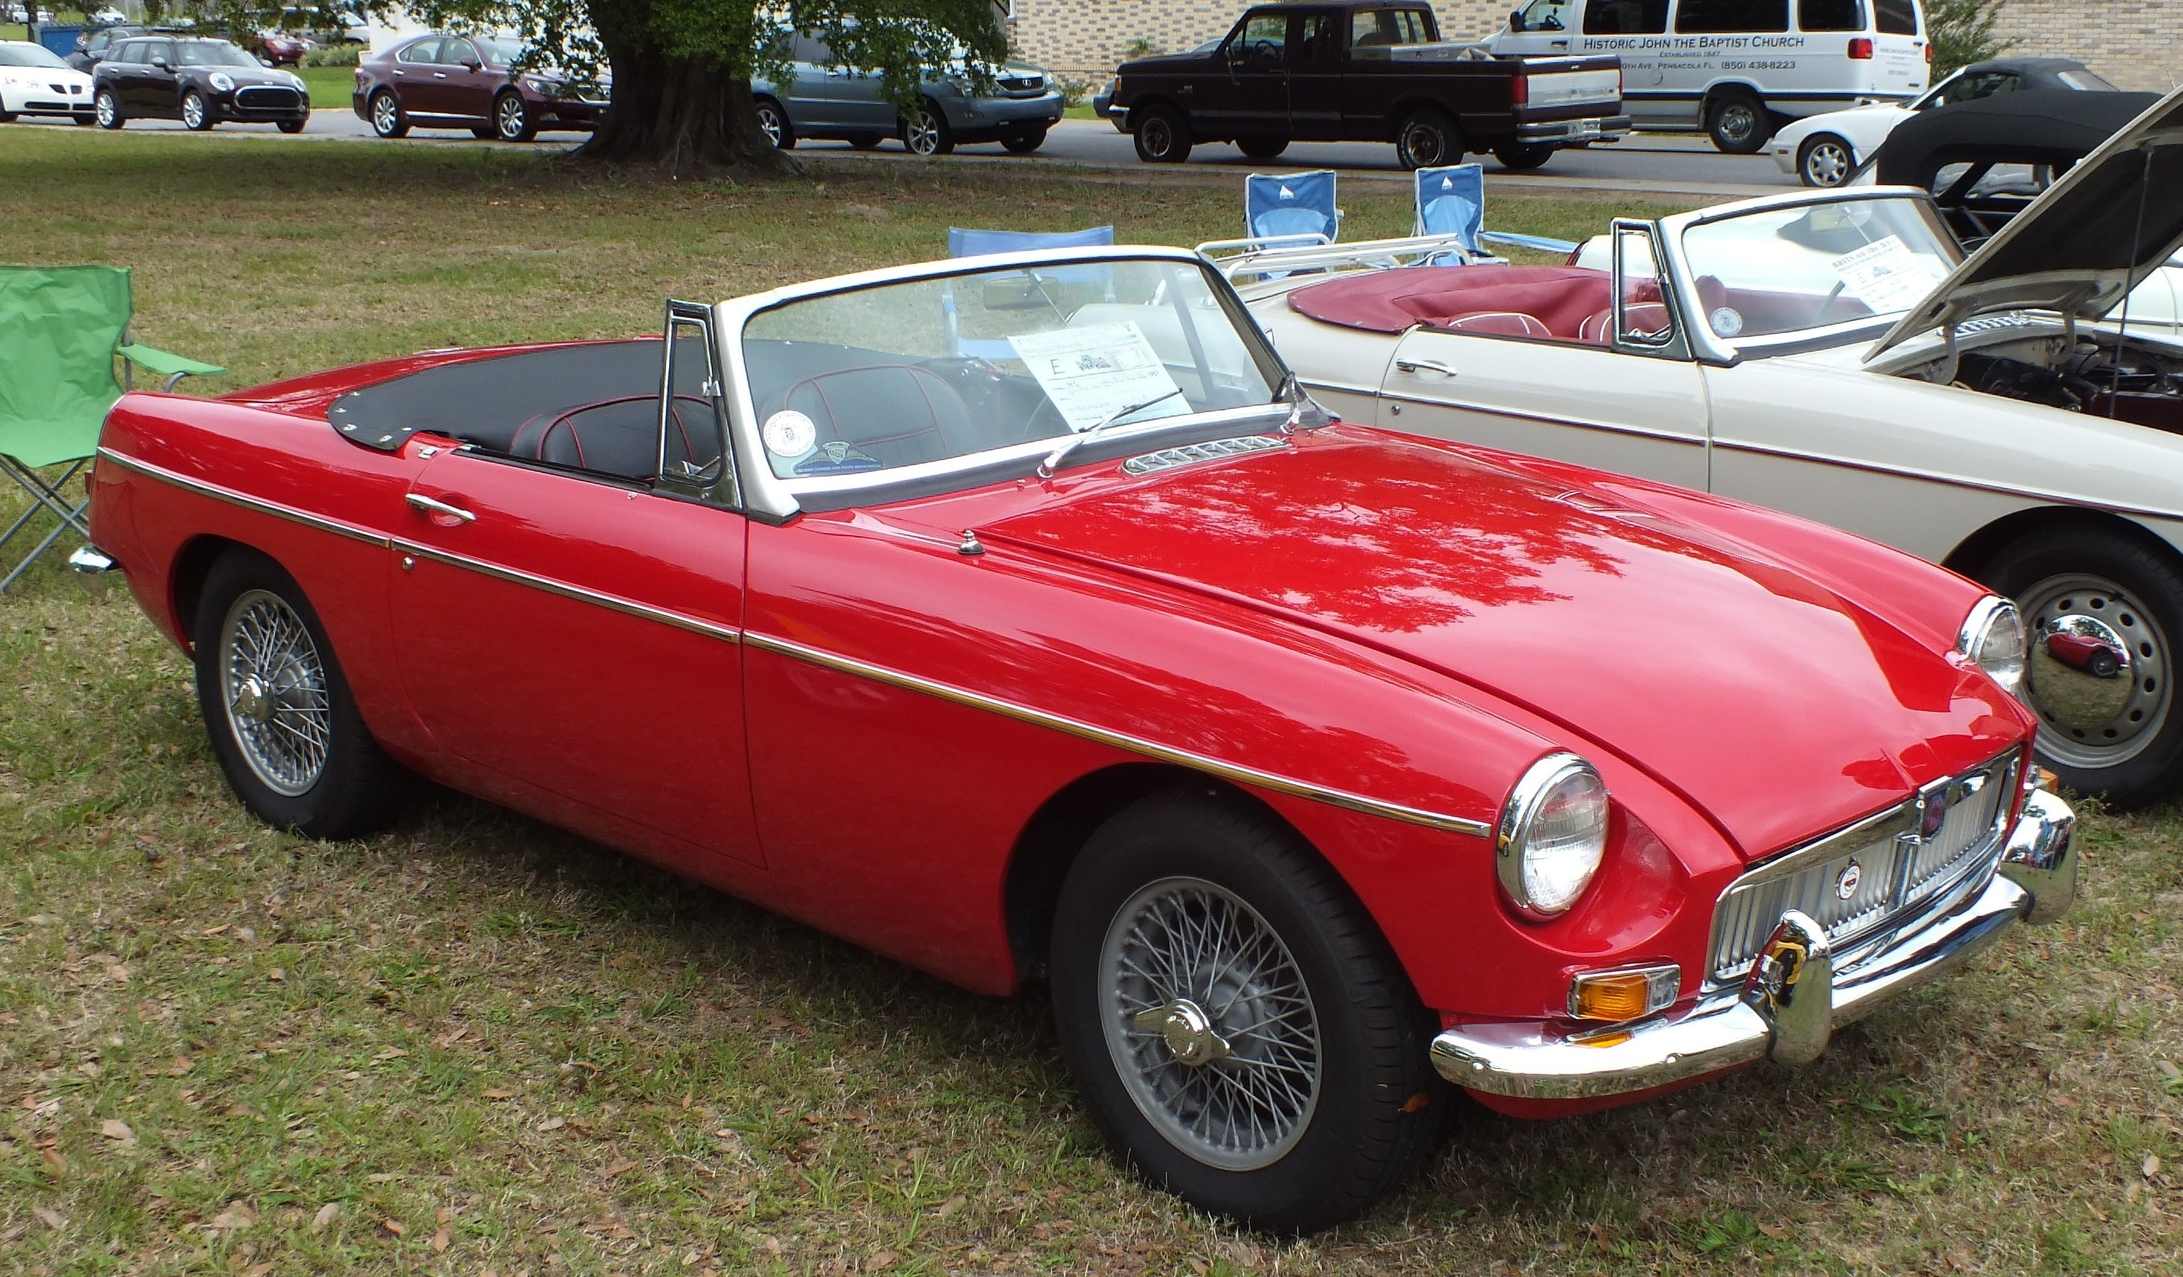 The MG Car Catalog A Growing List of MG Cars — The Bowsing Ken